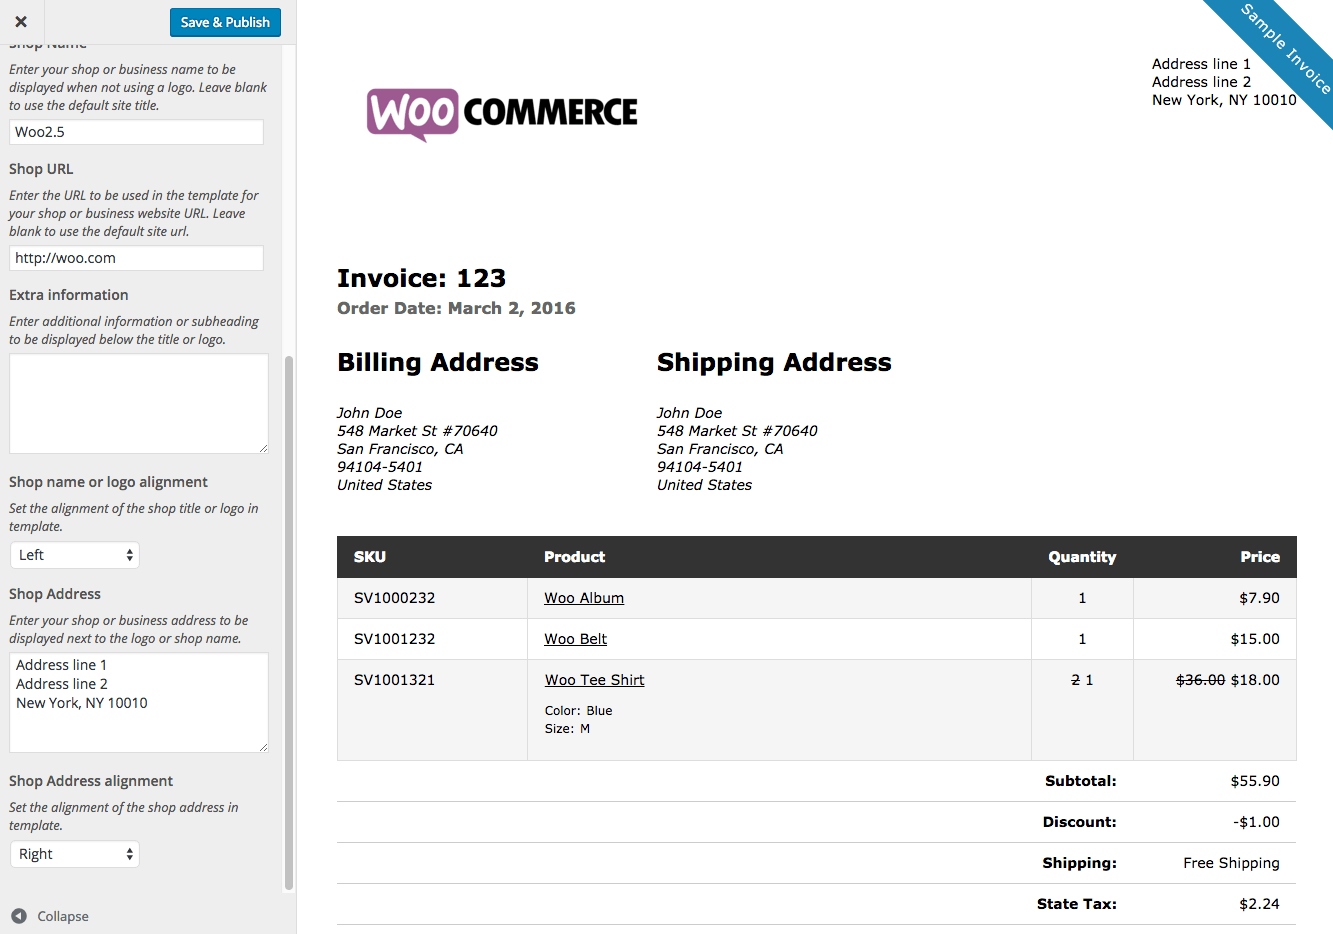 Sandiegolocksmithsus  Seductive Woocommerce Print Invoices Amp Packing Lists  Woocommerce Docs With Interesting Woocommerce Print Invoices  Packing Lists Customizer With Enchanting Sample Invoice In Word Also Virtually There Einvoice In Addition Sample Consultant Invoice And How To Create Invoice In Excel As Well As Billing And Invoicing Additionally Sample Construction Invoice From Docswoocommercecom With Sandiegolocksmithsus  Interesting Woocommerce Print Invoices Amp Packing Lists  Woocommerce Docs With Enchanting Woocommerce Print Invoices  Packing Lists Customizer And Seductive Sample Invoice In Word Also Virtually There Einvoice In Addition Sample Consultant Invoice From Docswoocommercecom